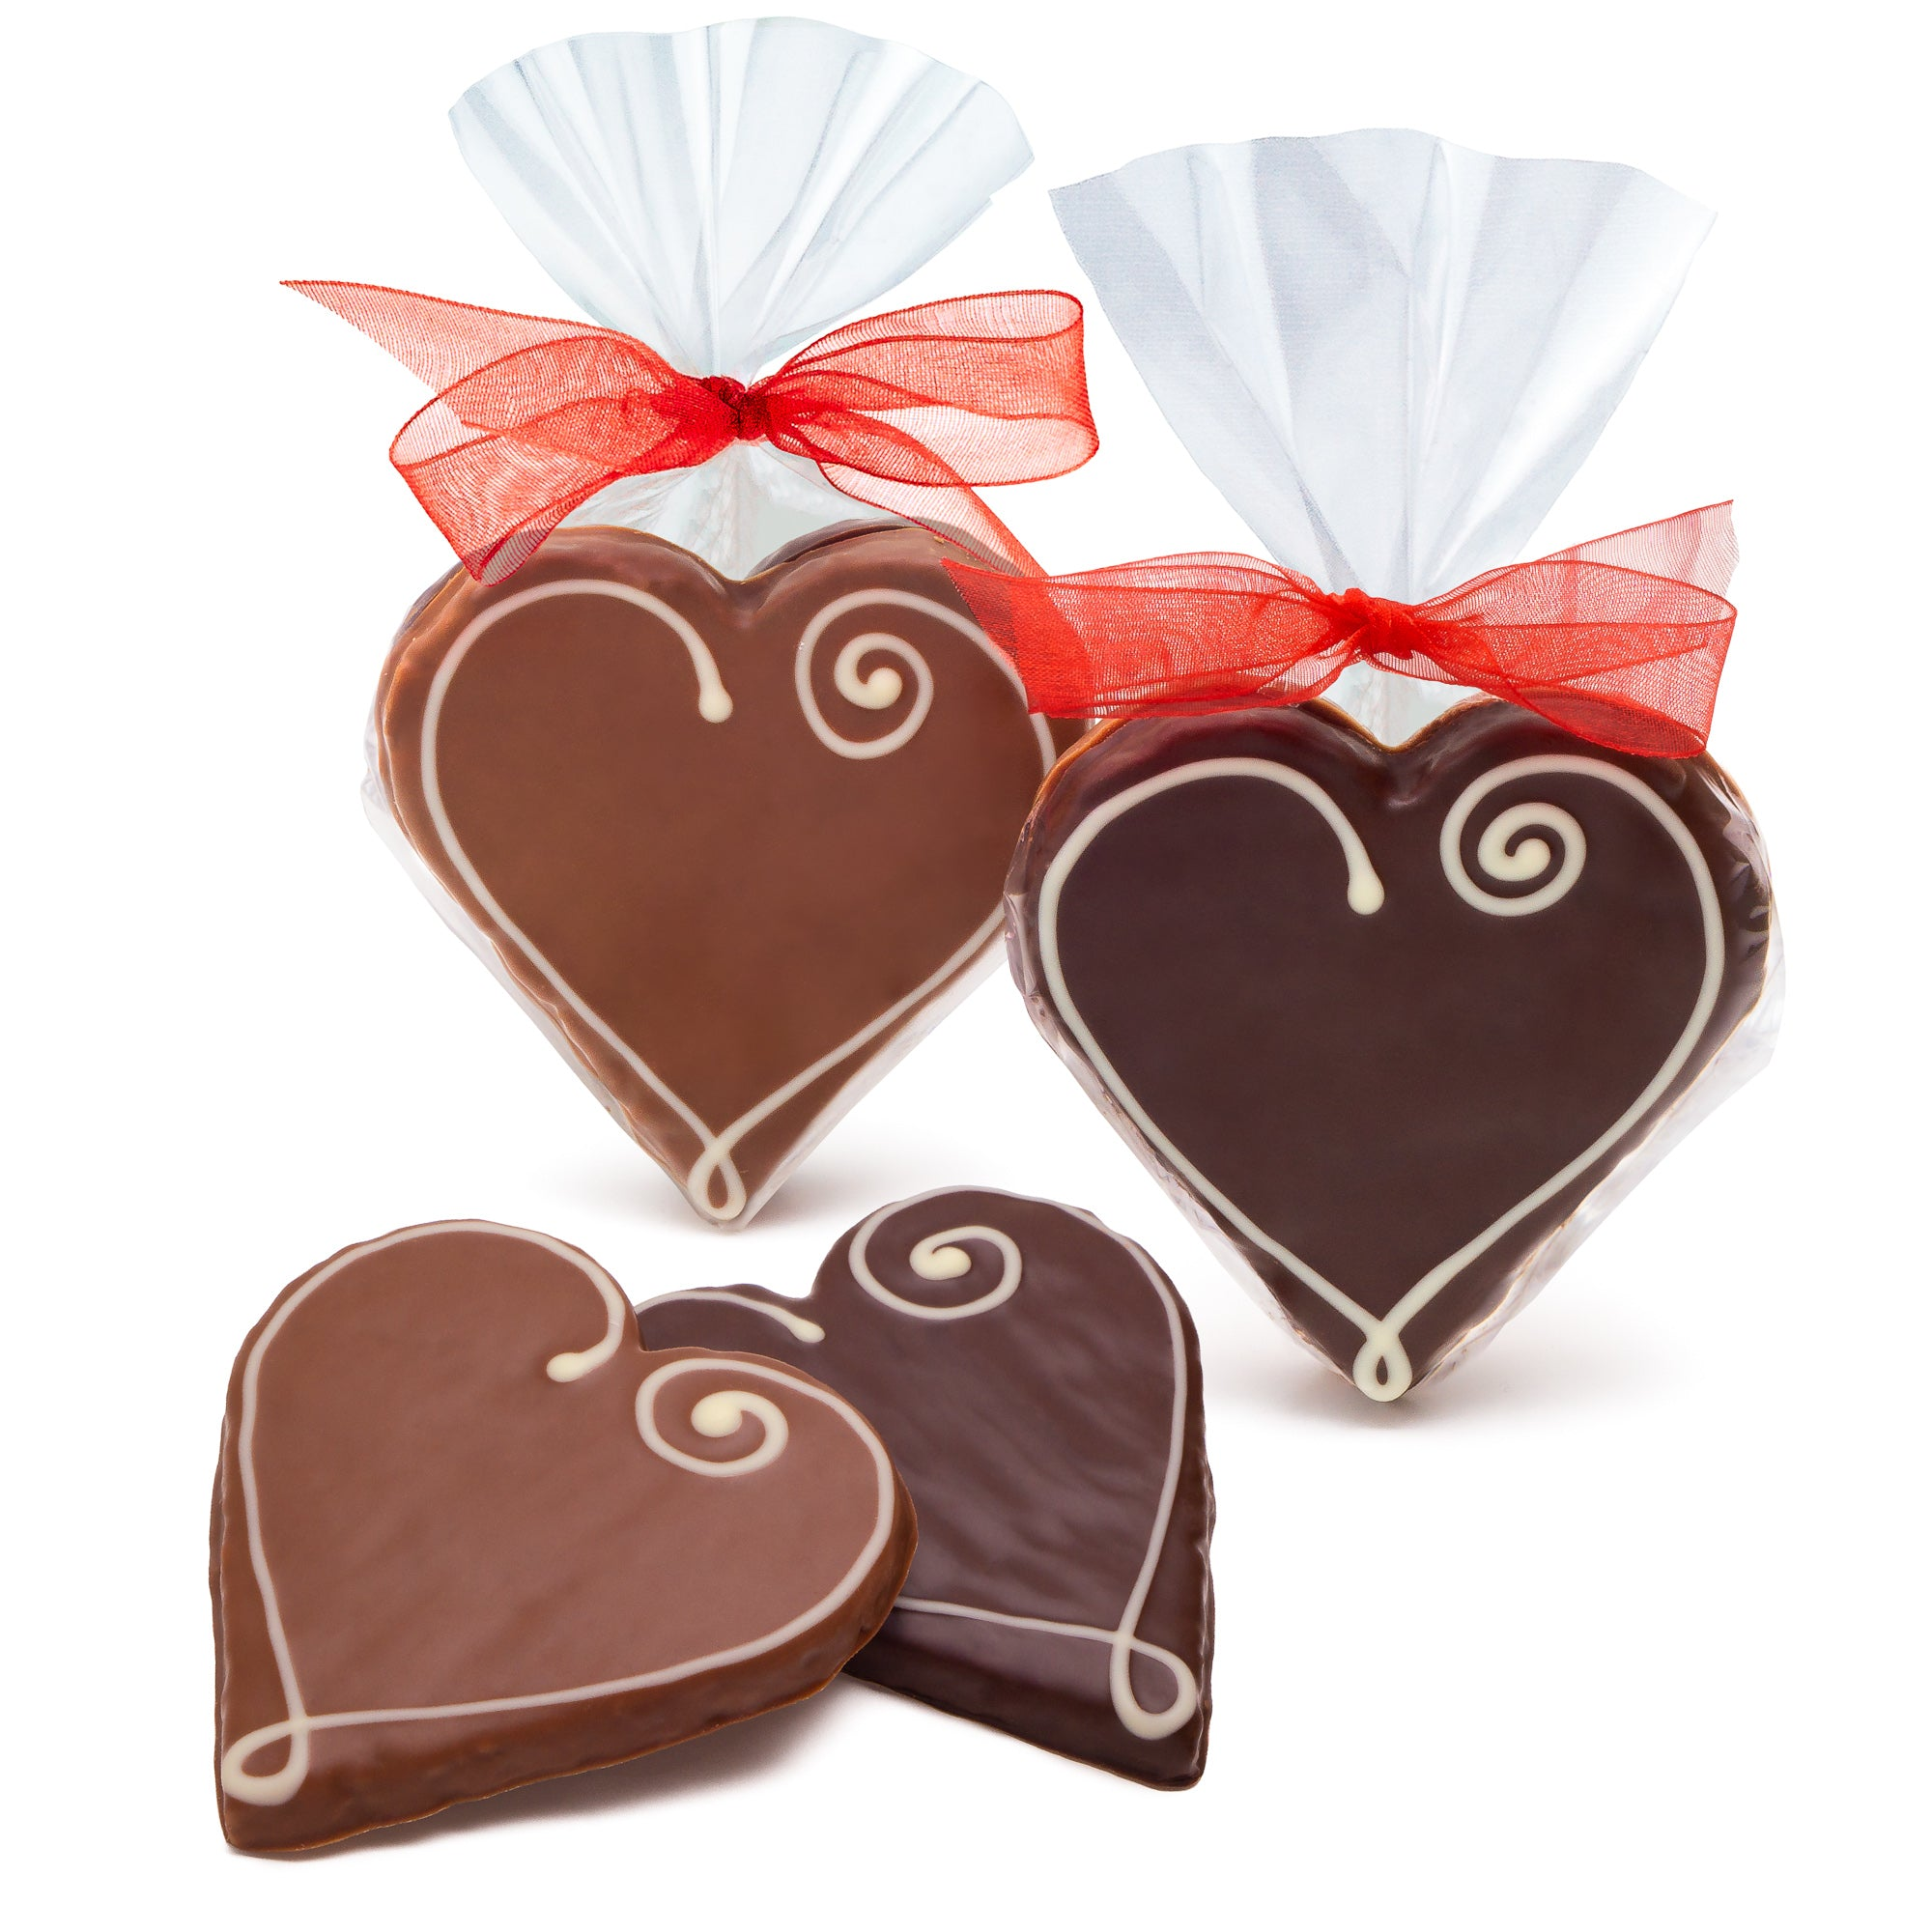 Pecan Heart Cookies - Favor Bag